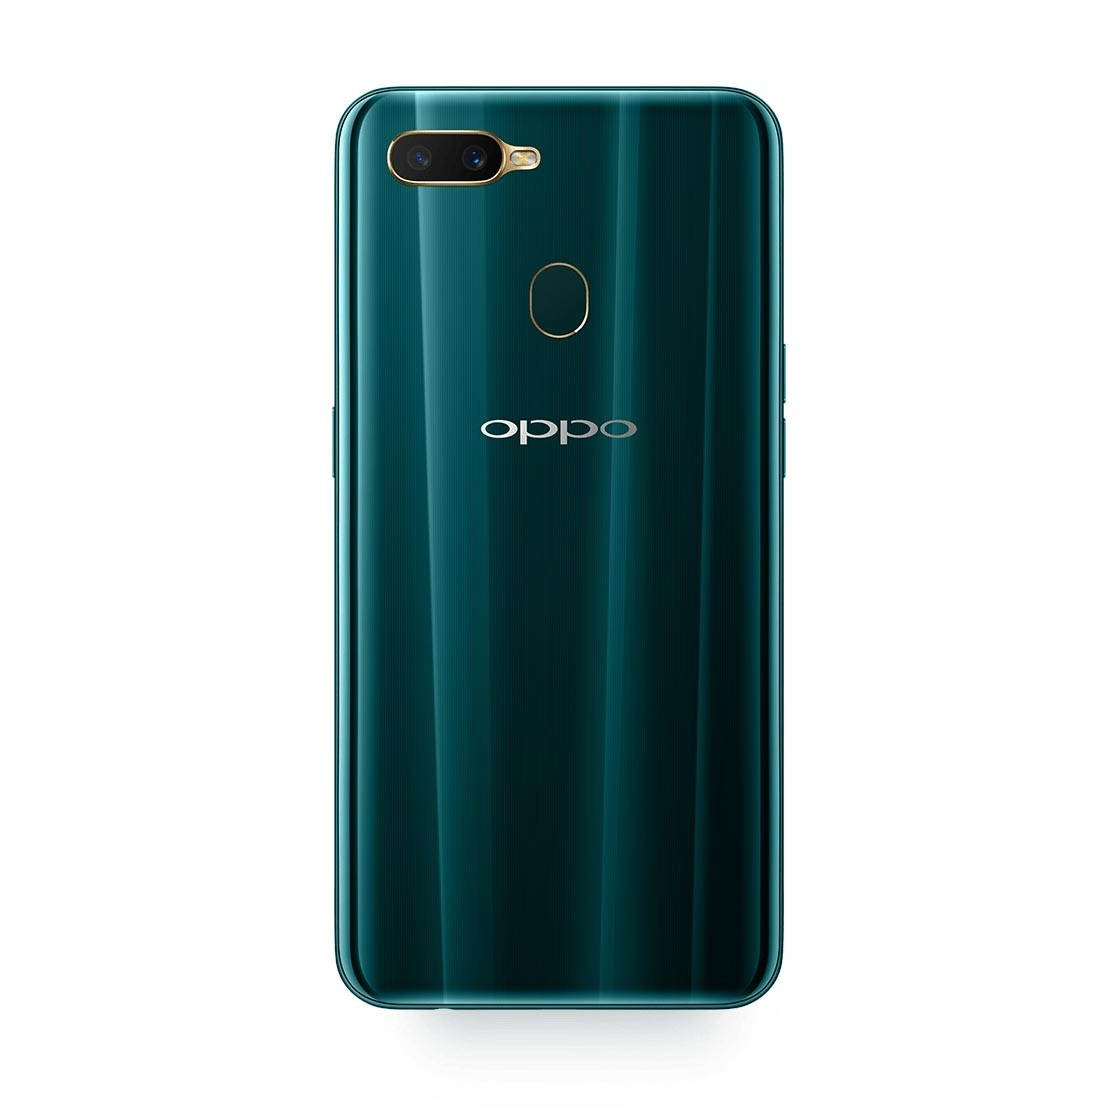 Oppo A7 Wallpapers: OPPO A7 4GB/64GB - Glaze Blue